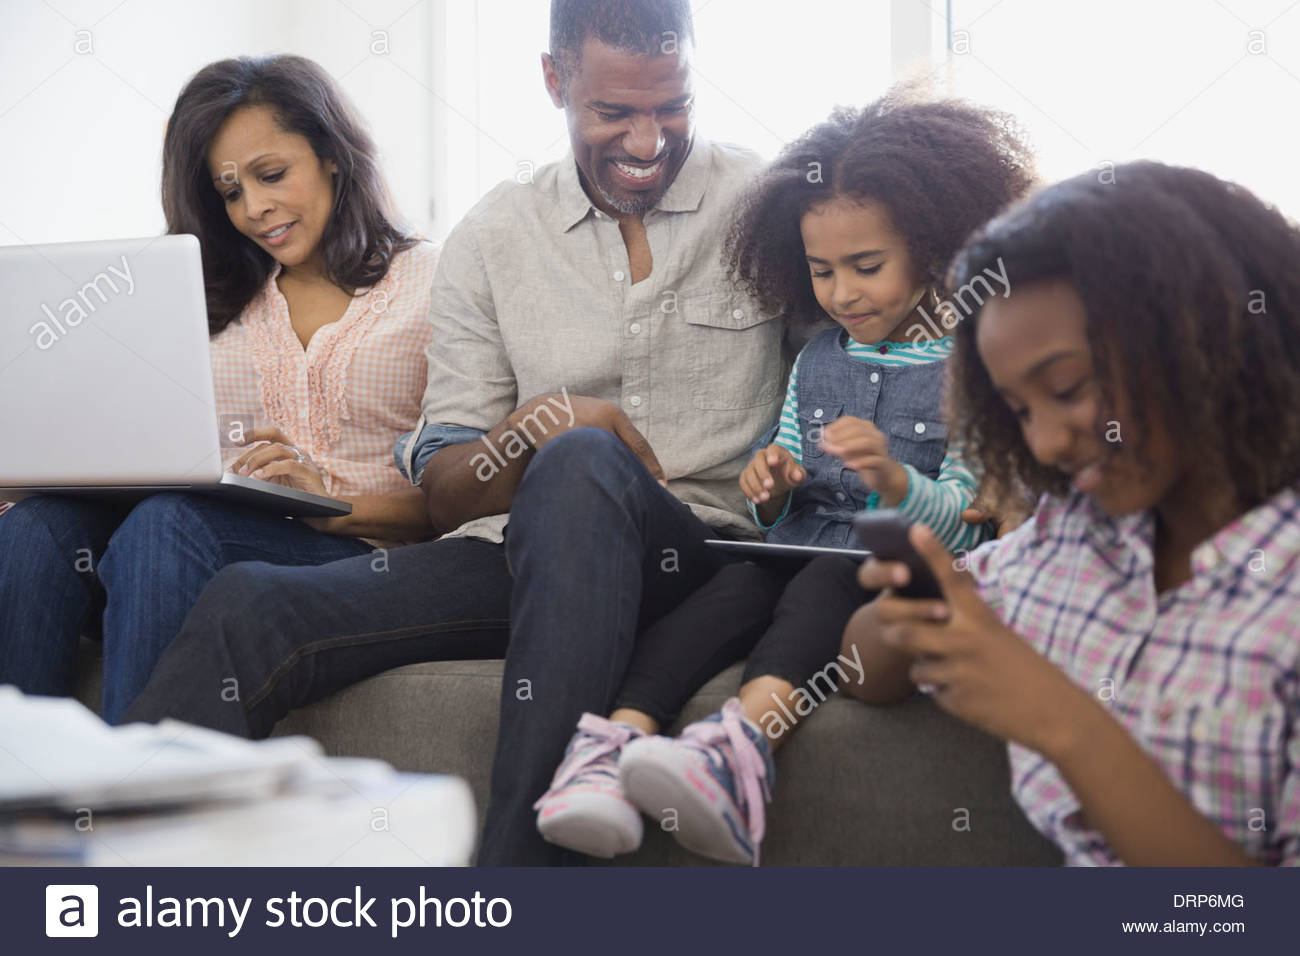 Family using wireless devices at home - Stock Image